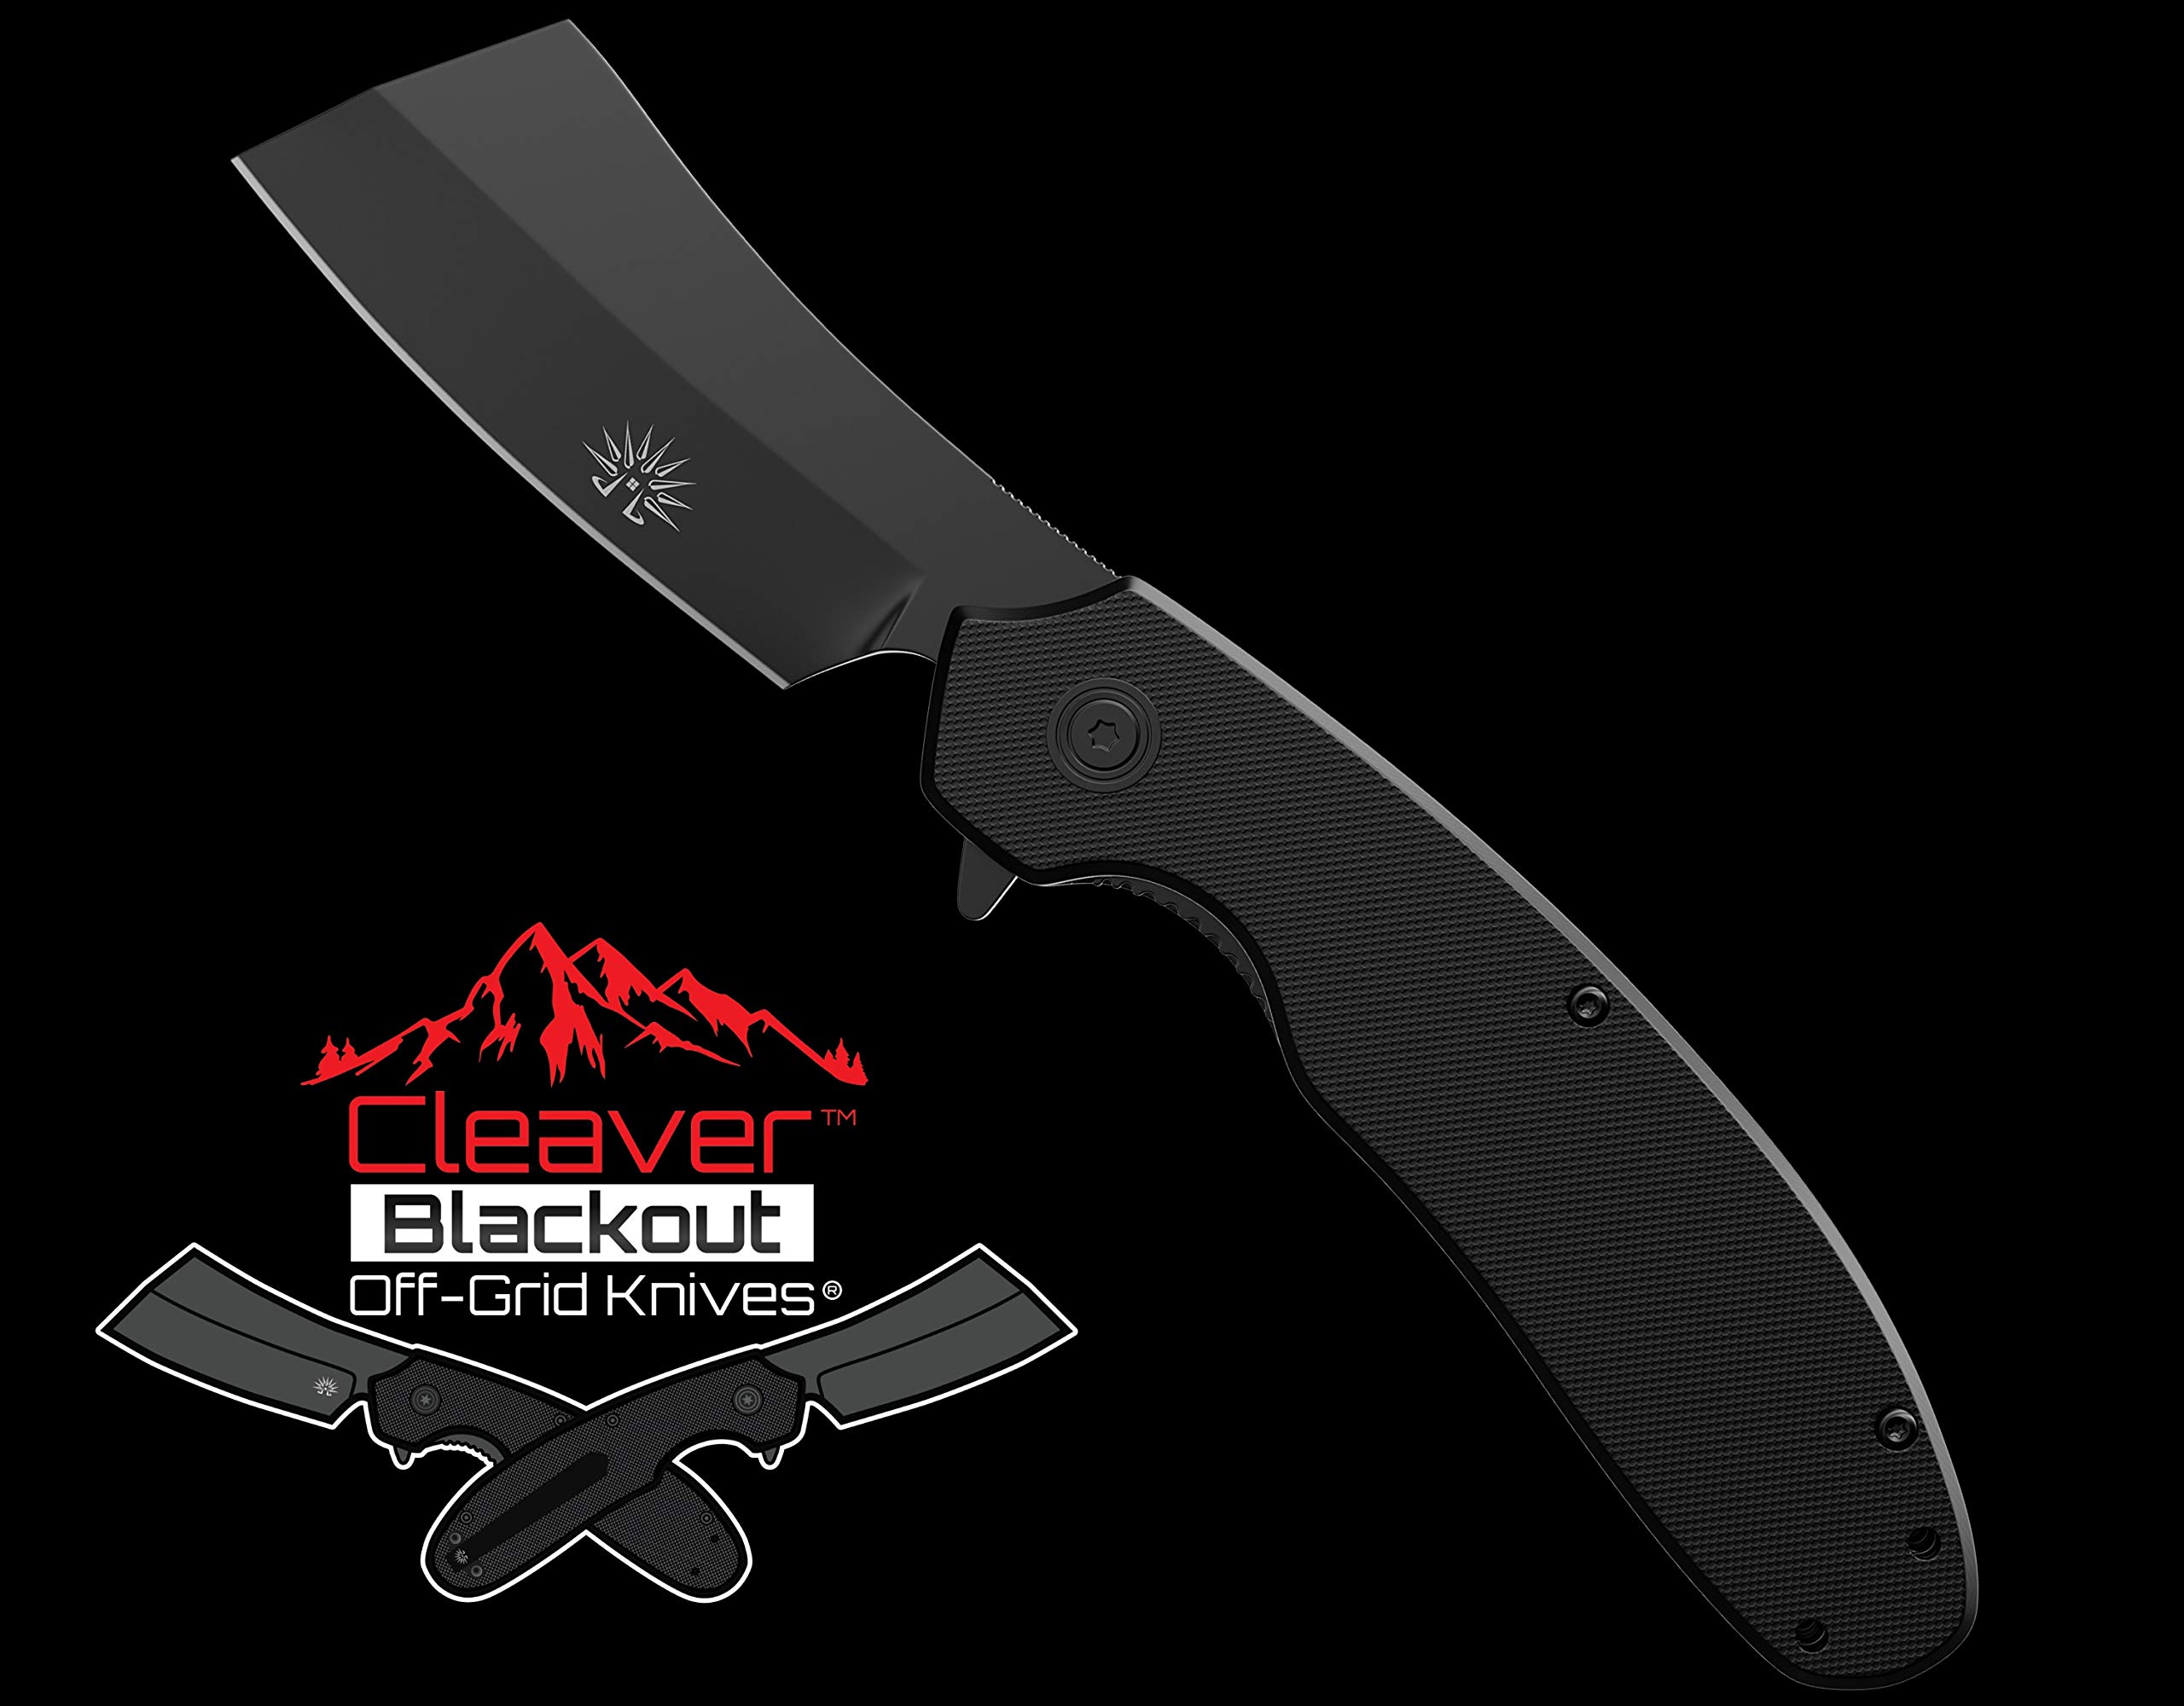 Off-Grid Knives - OG-950B Cleaver Blackout - Legal Carry Tough EDC Folding Knife - Cryo AUS8 Blade Steel with Titanium Nitride Coating, G10 Scales & Tip-Up Reversible Deep Carry by Off-Grid Knives (Image #10)